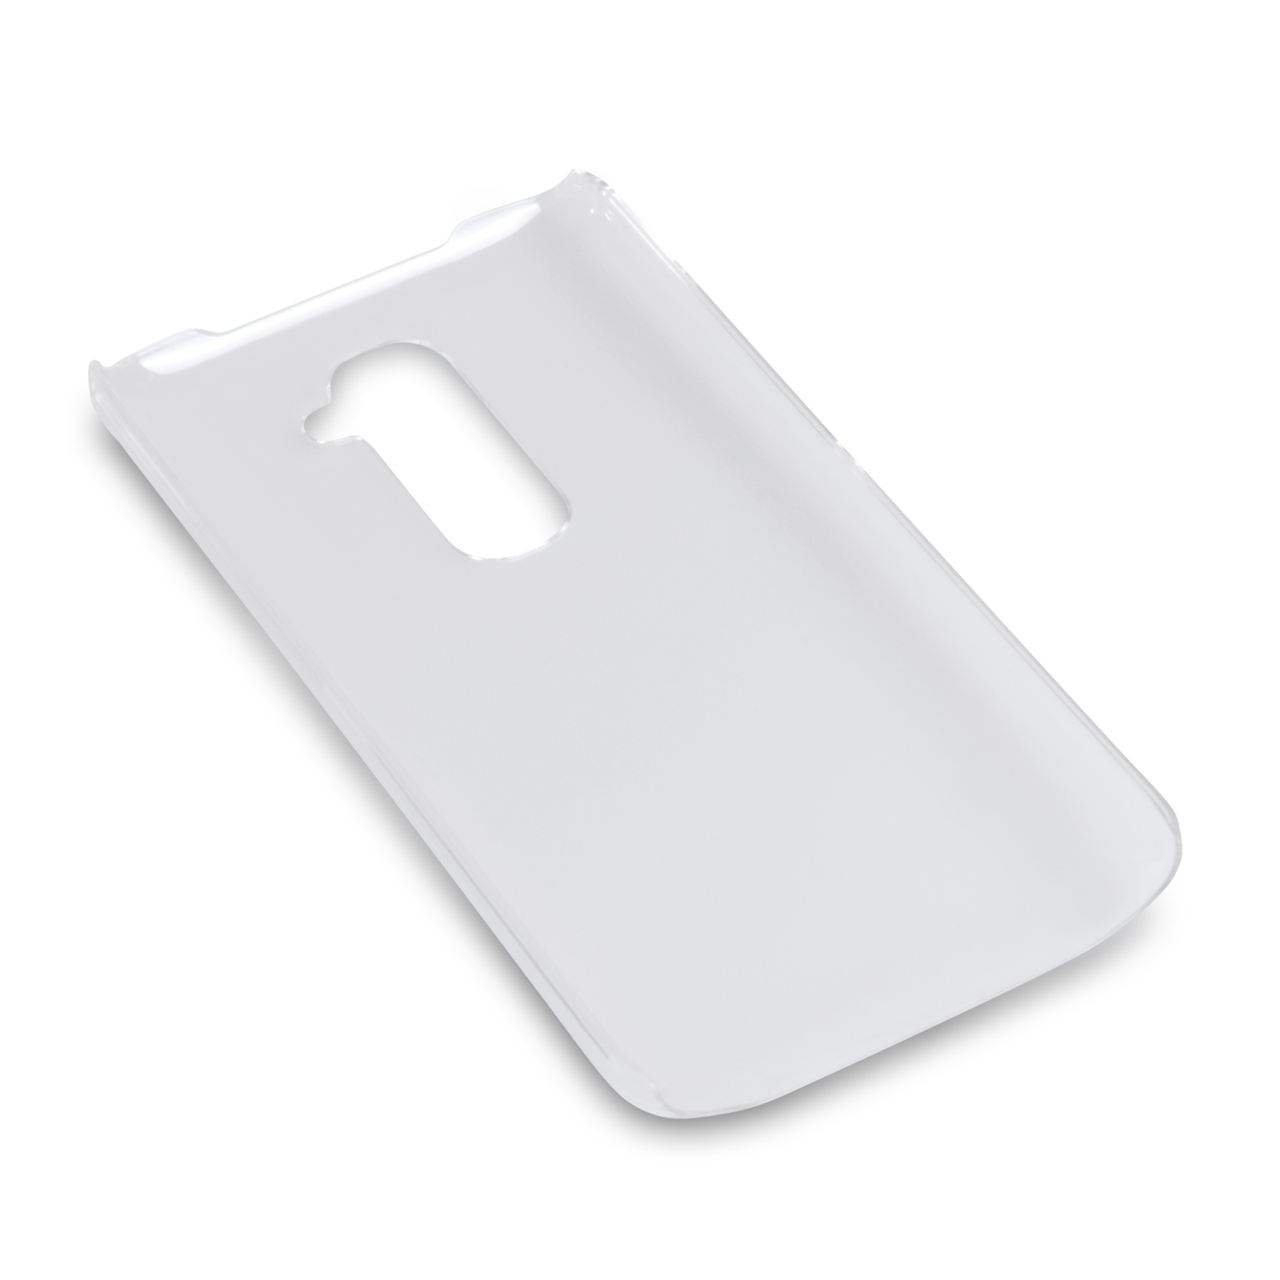 YouSave Accessories LG G2 Hard Case - Crystal Clear